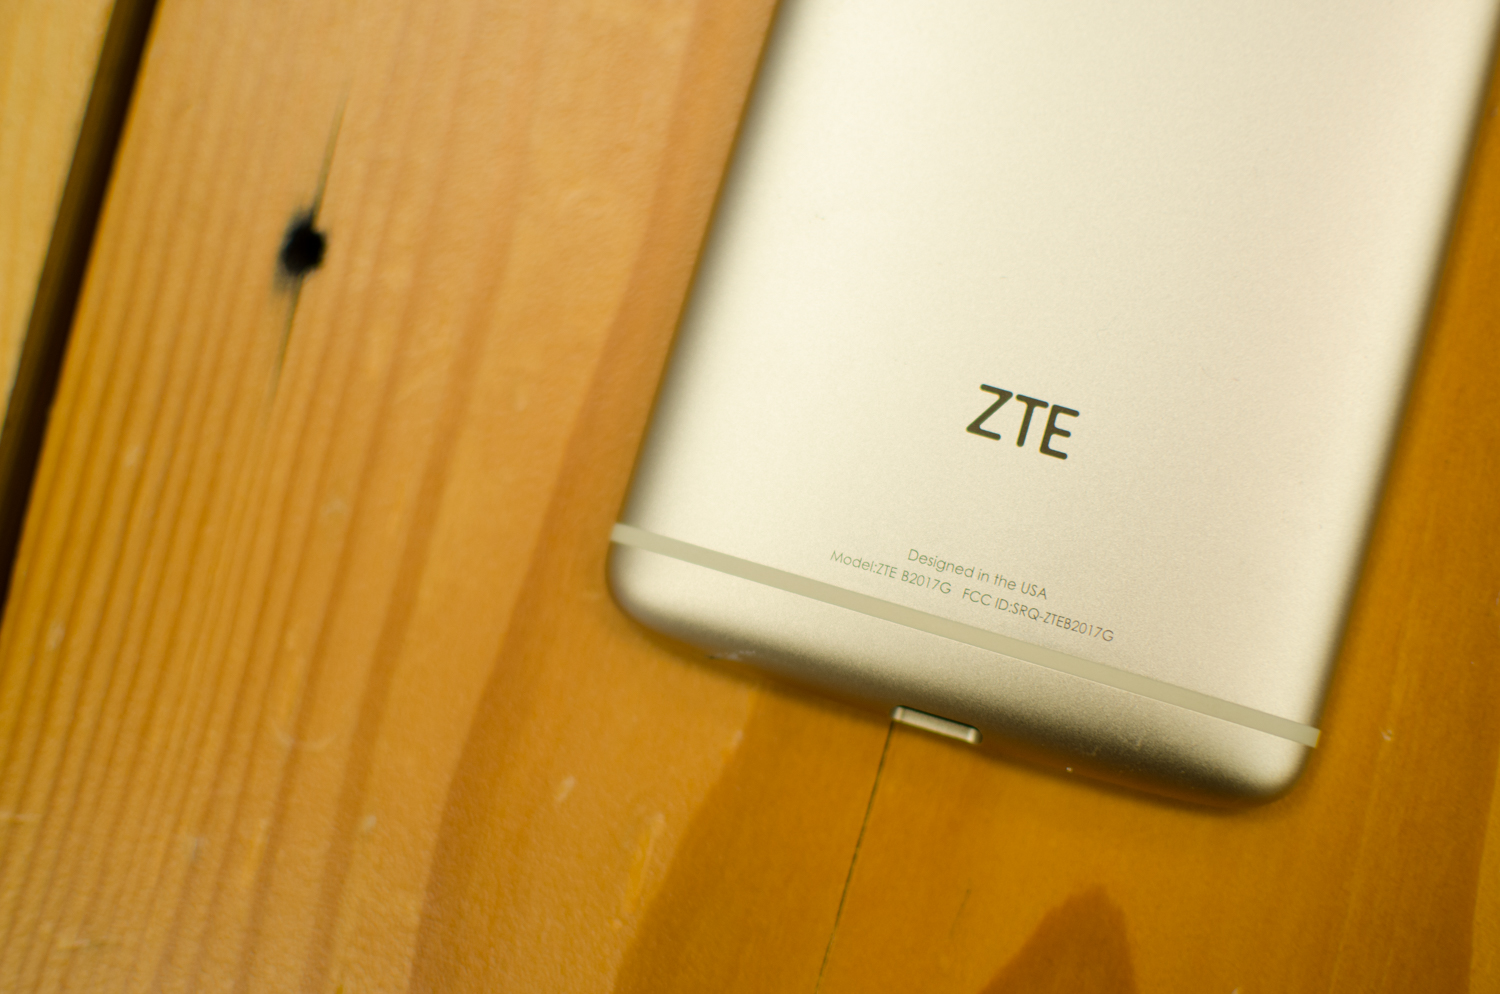 ZTE's Gigabit Phone is a Stepping Stone to 5G